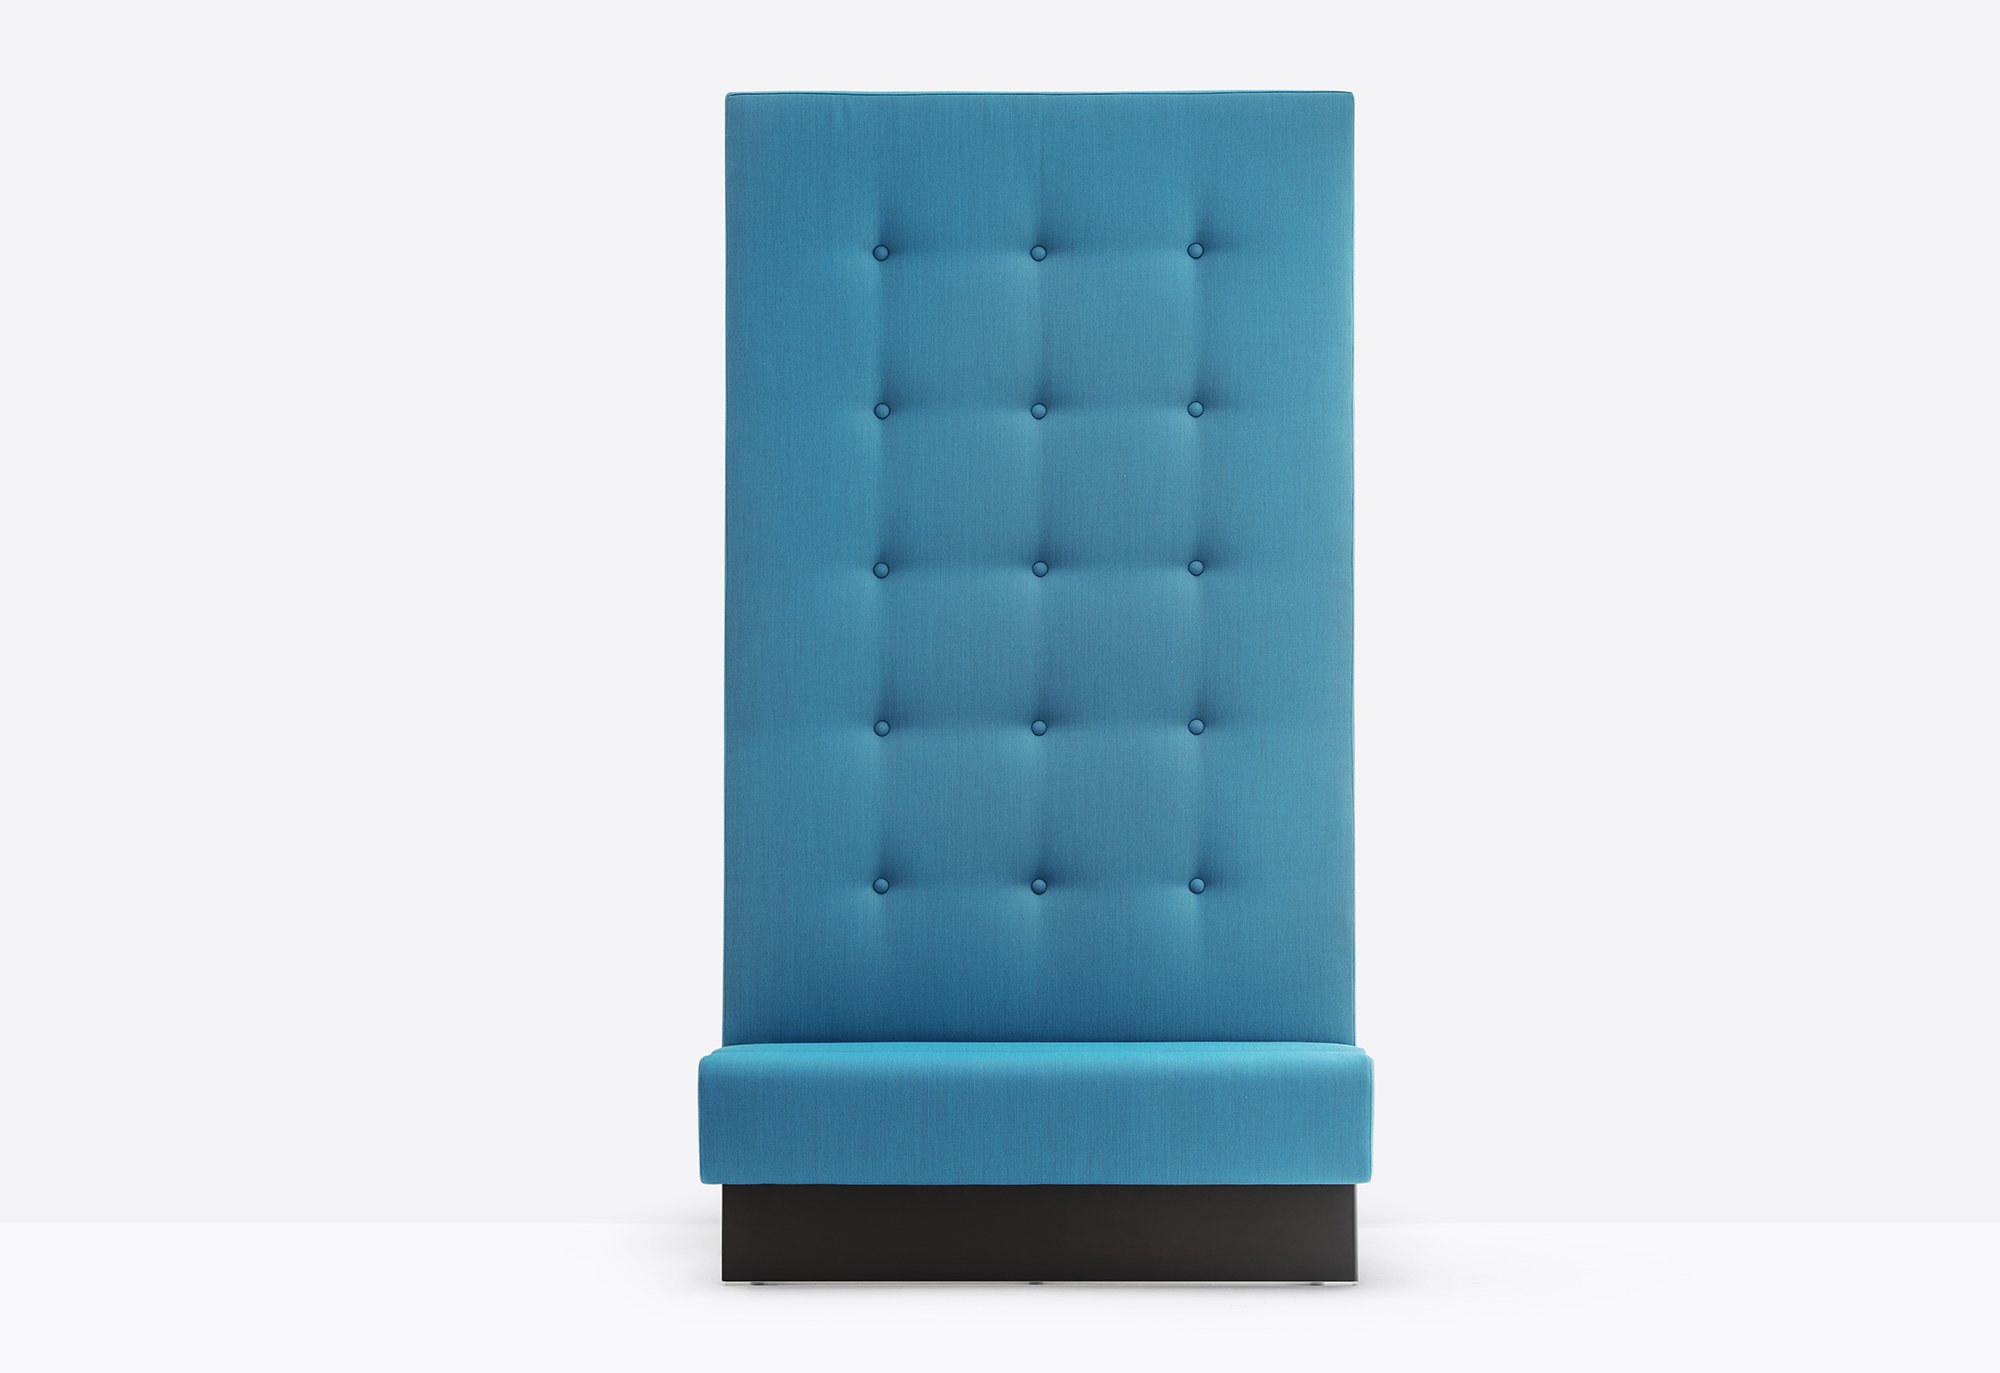 Modus Modular Seating sofa from Pedrali, designed by Pedrali R&D